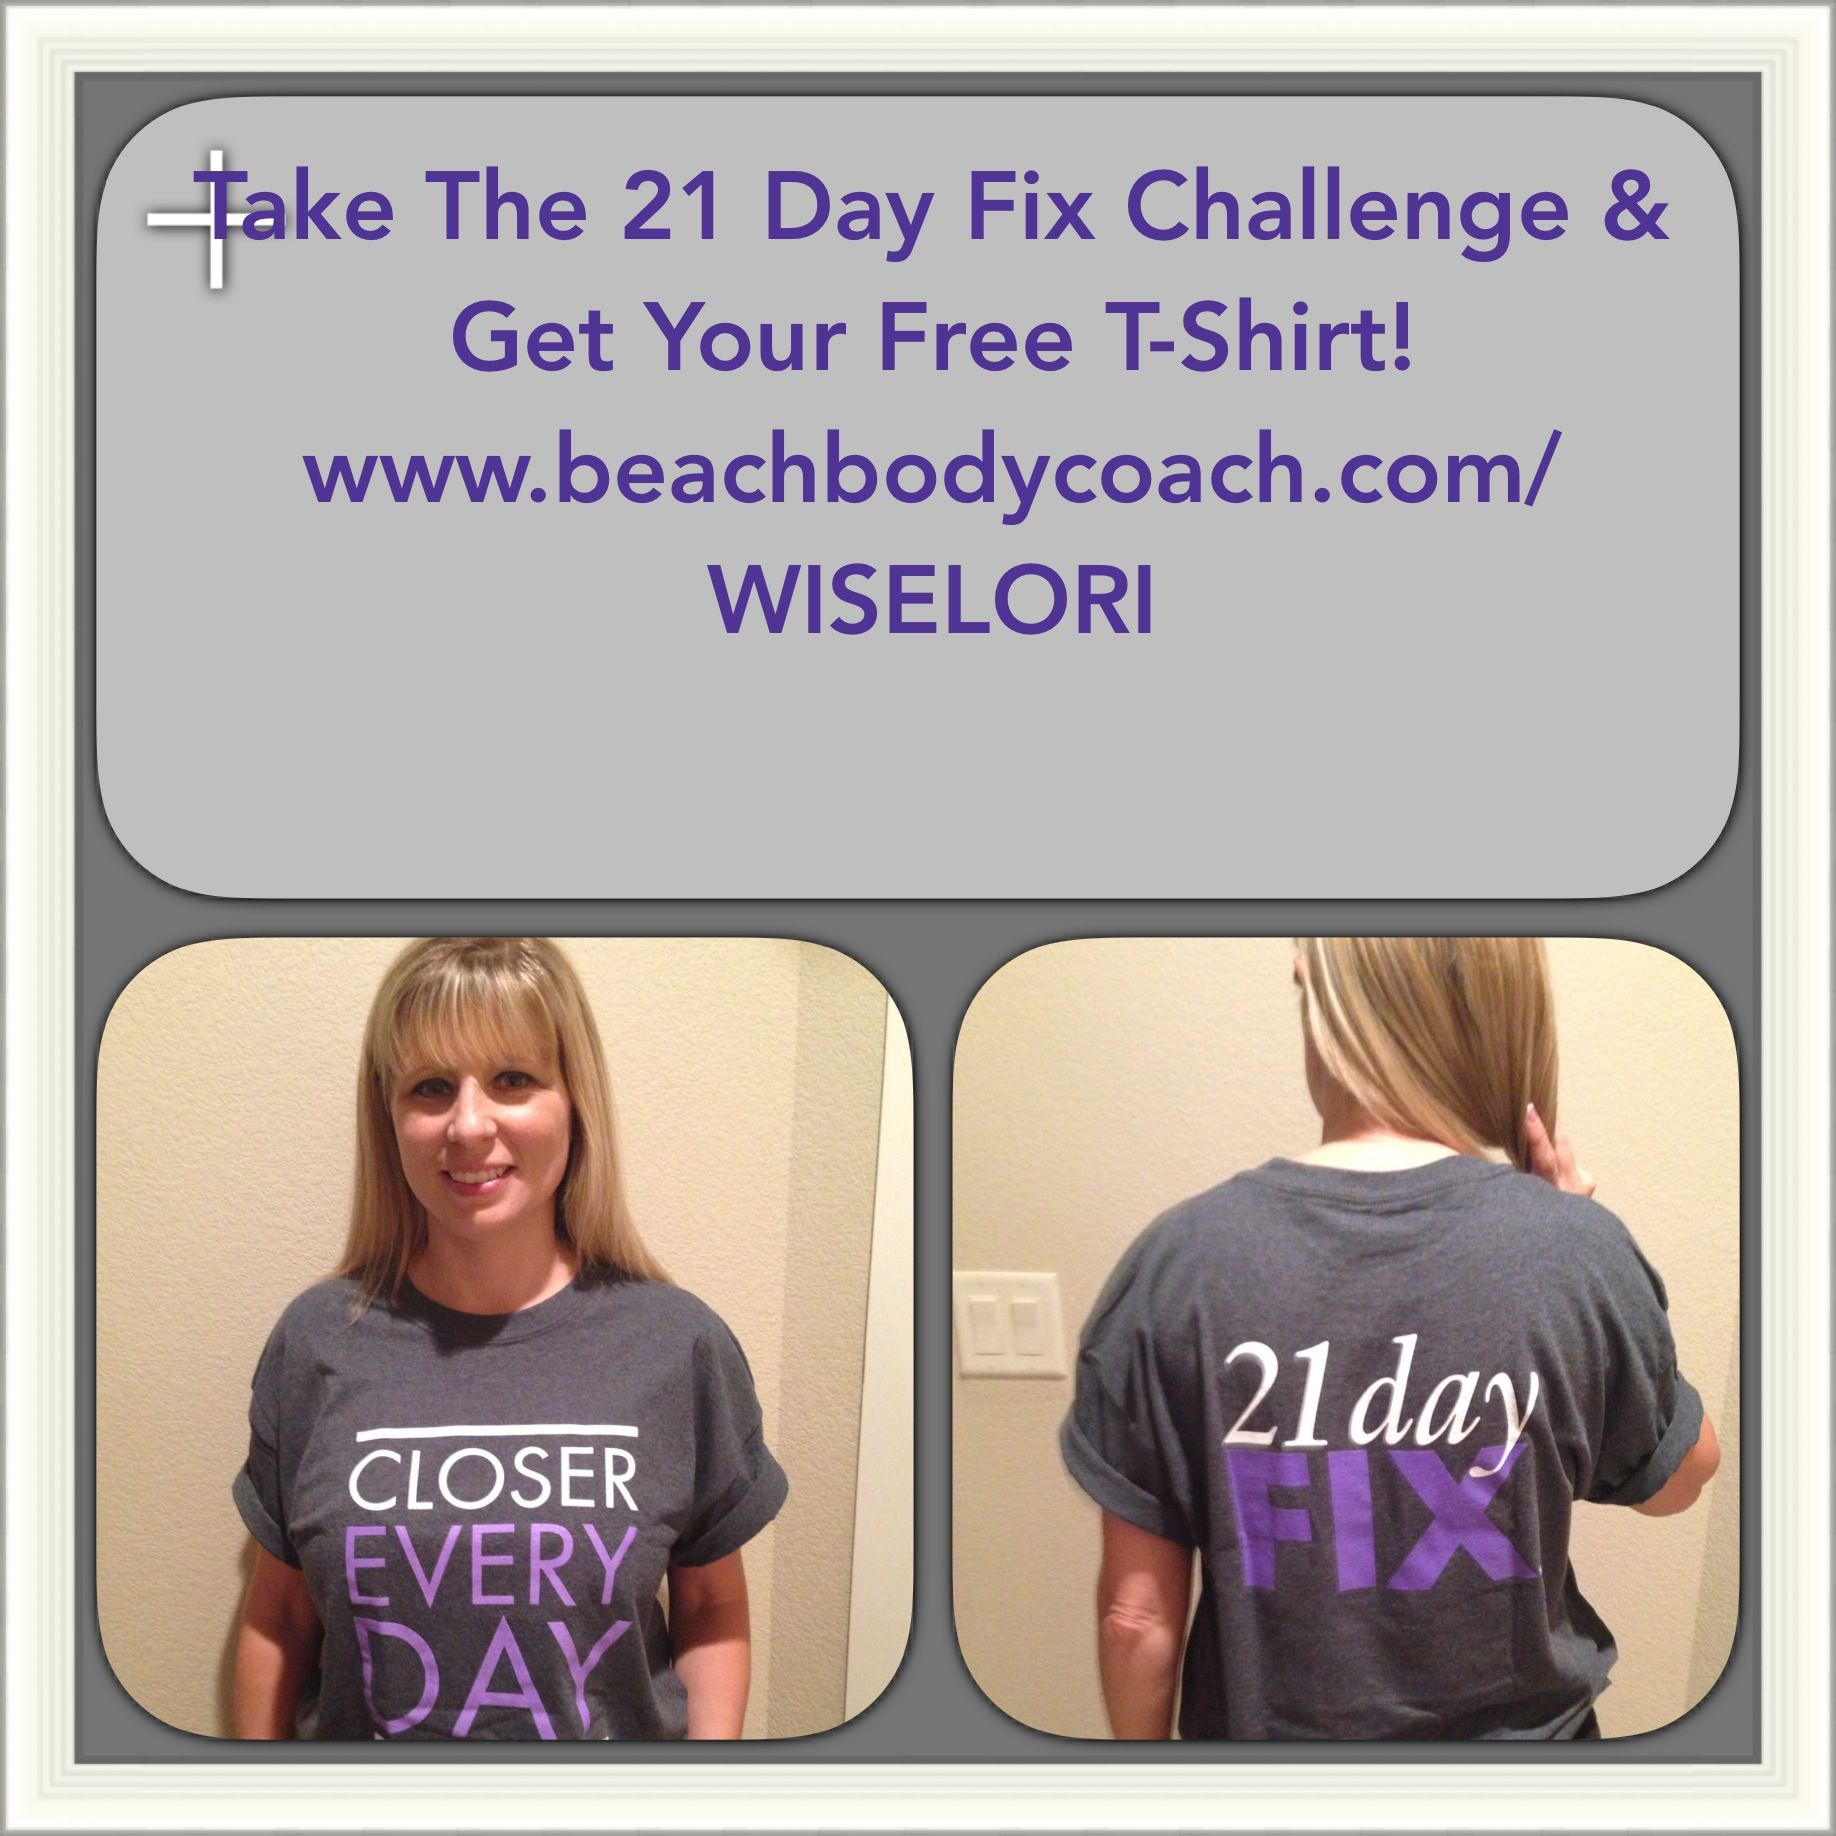 Got My Free Beachbody 21 Day Fix Challenge T Shirt Lost 15 Pounds In 2 Rounds Take The Get Yours Too Beachbodycoach WISELORI